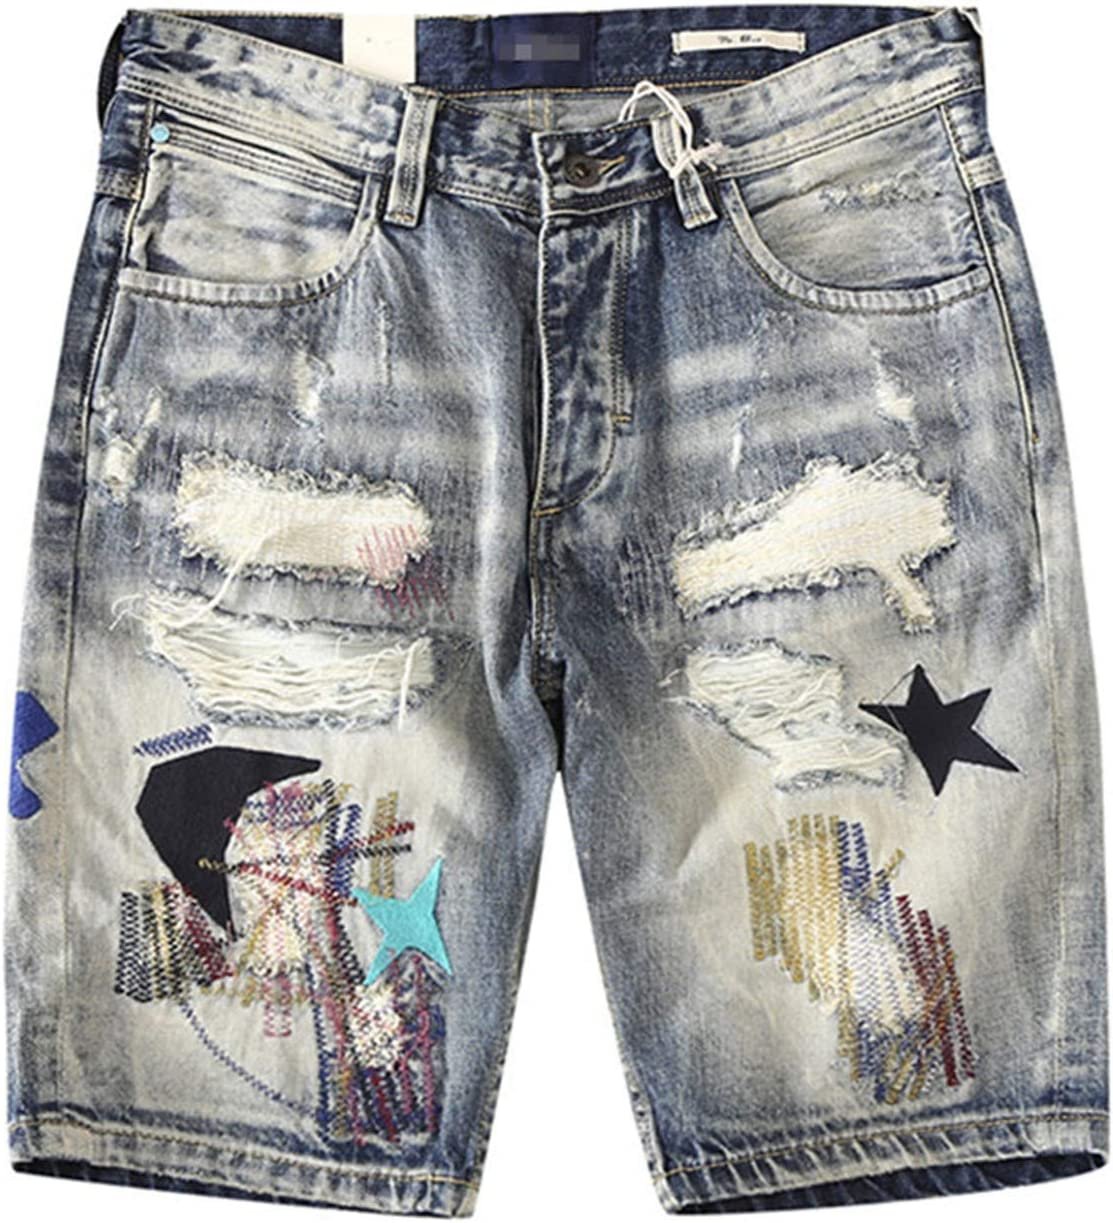 Yiqinyuan Street Men's Ripped Denim Shorts Distressed Pentagram Embroidery Jeans Shorts Summer Knee Length Shorts